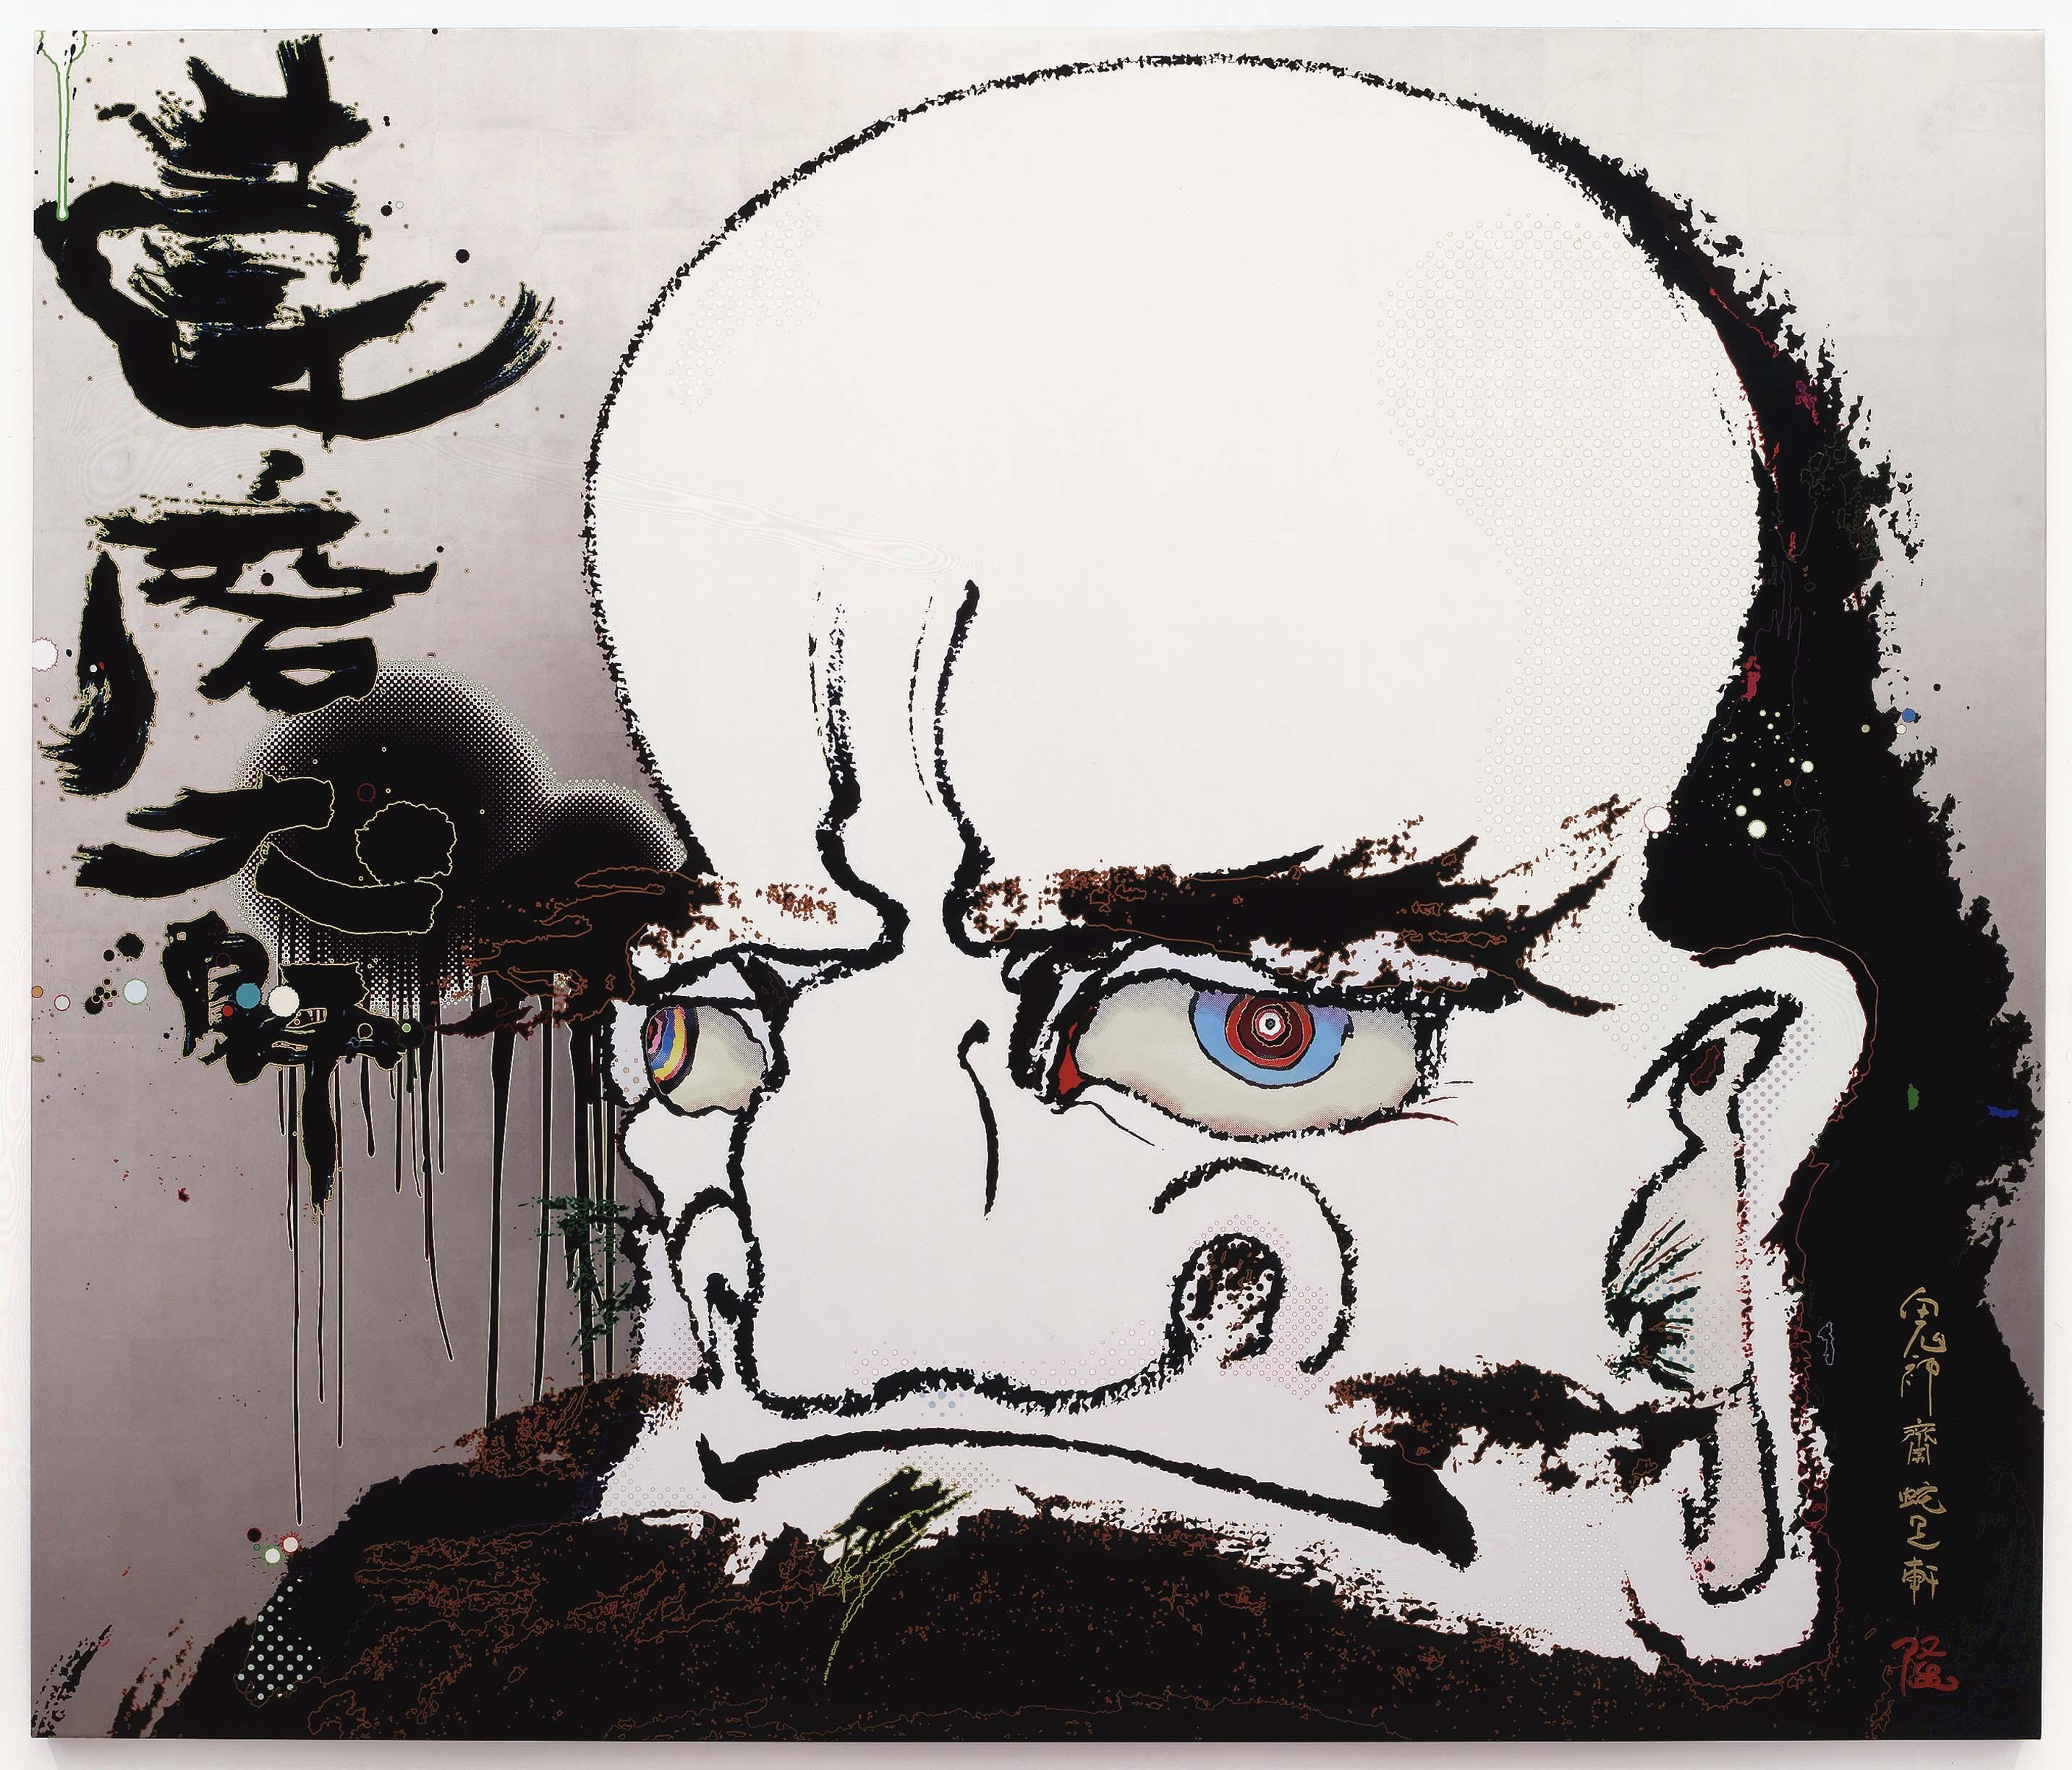 A painting dominated by a large bald head of a male figure with bulging eyes, broad nose, long ears and grimacing smile. Brushy, calligraphic Japanese characters fill the upper left corner of the composition.